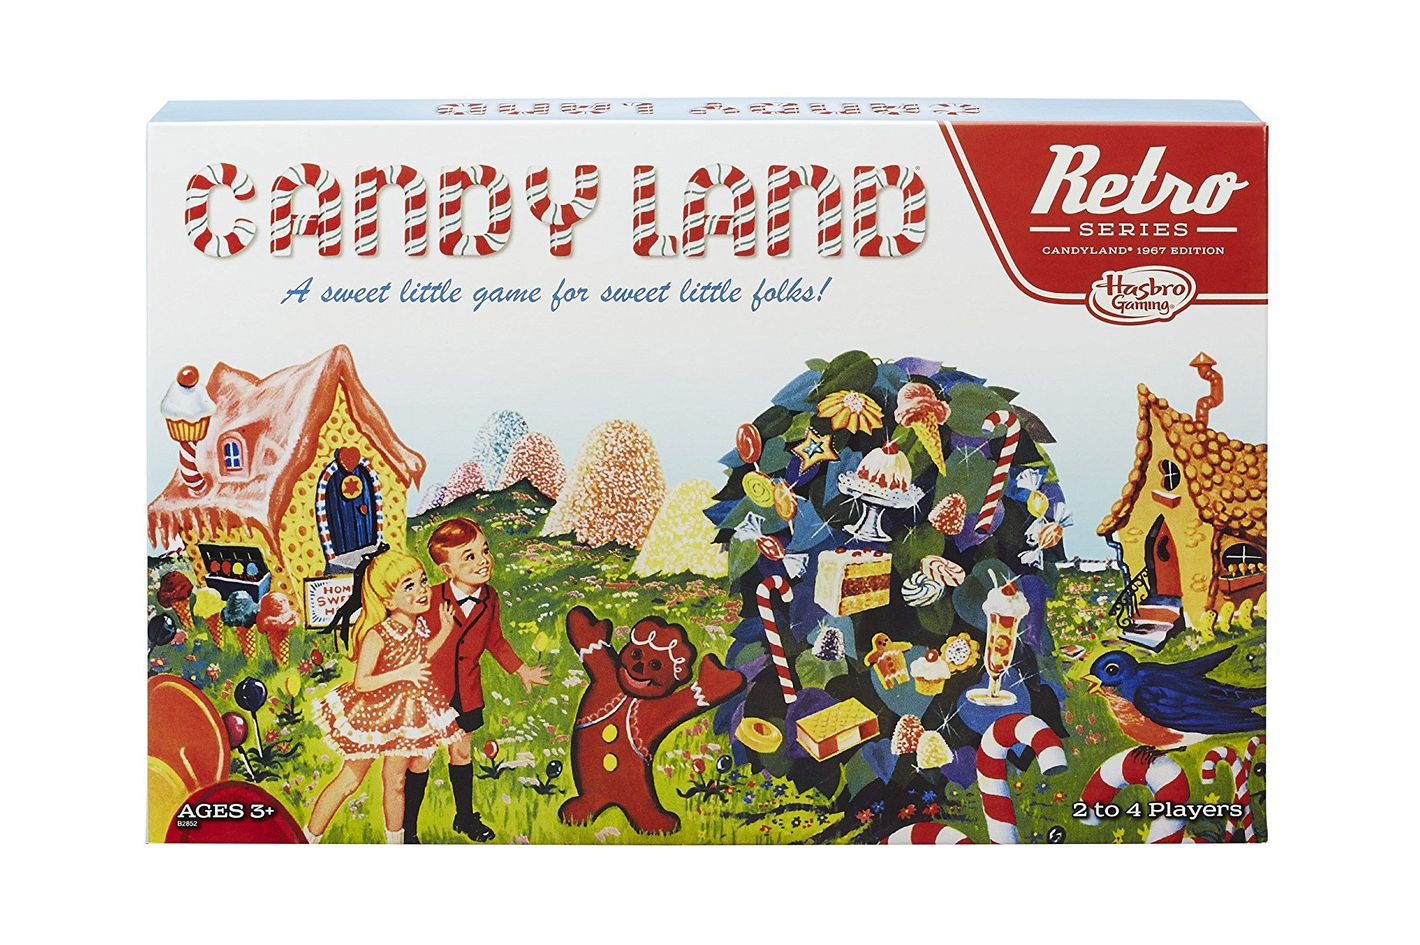 Candy Land: Retro Series 1967 Edition